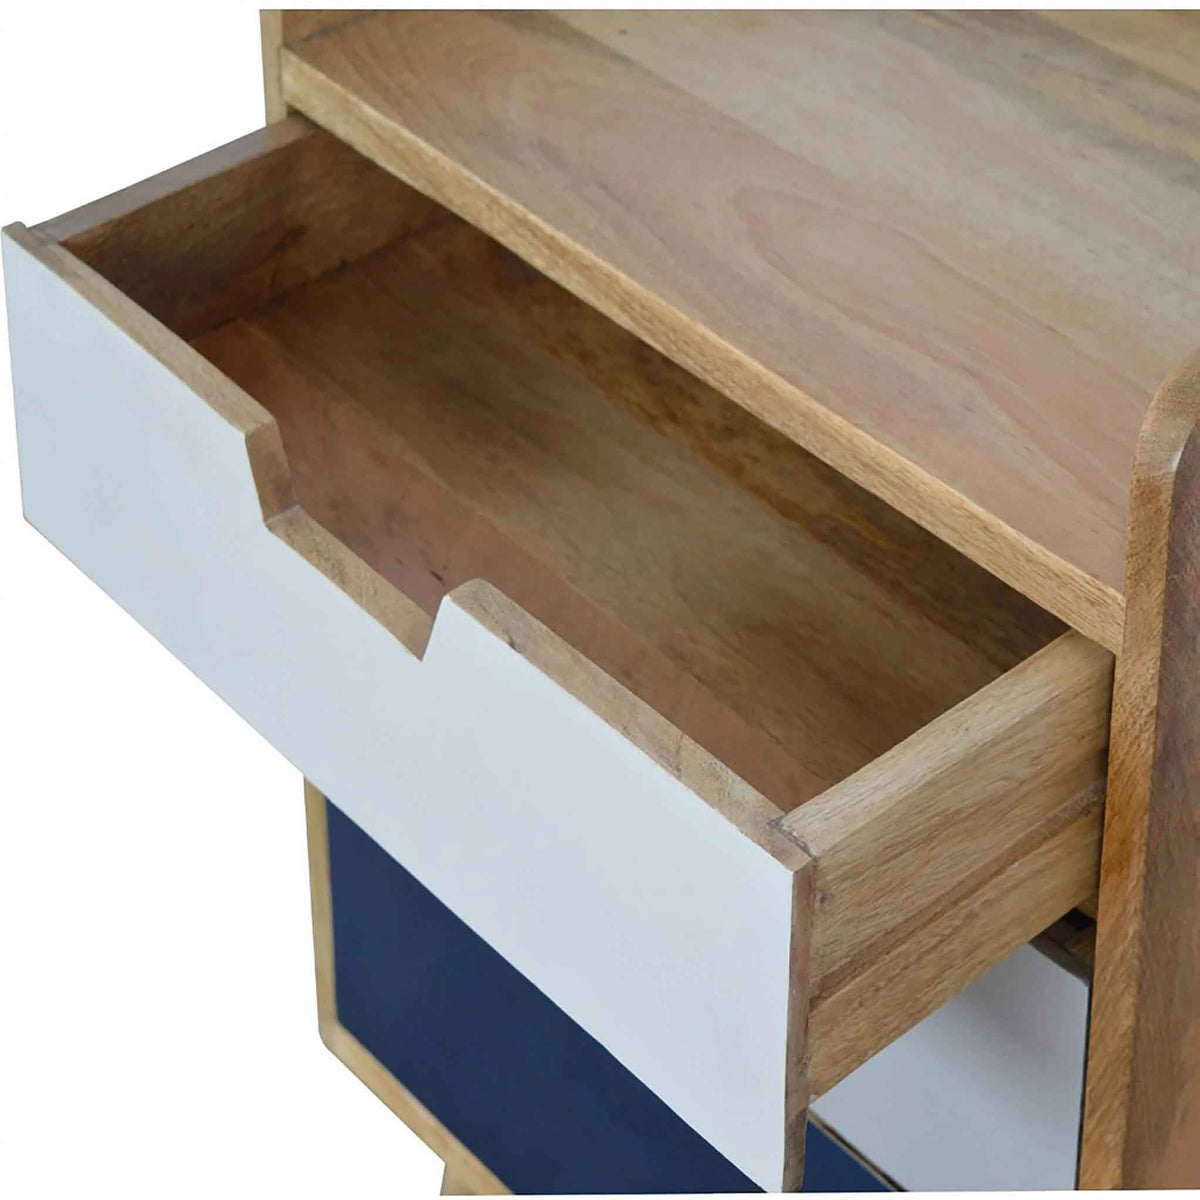 Opened drawer view of The Scandinavian Navy Painted Mango Wood Bedside Table with 3 Drawers